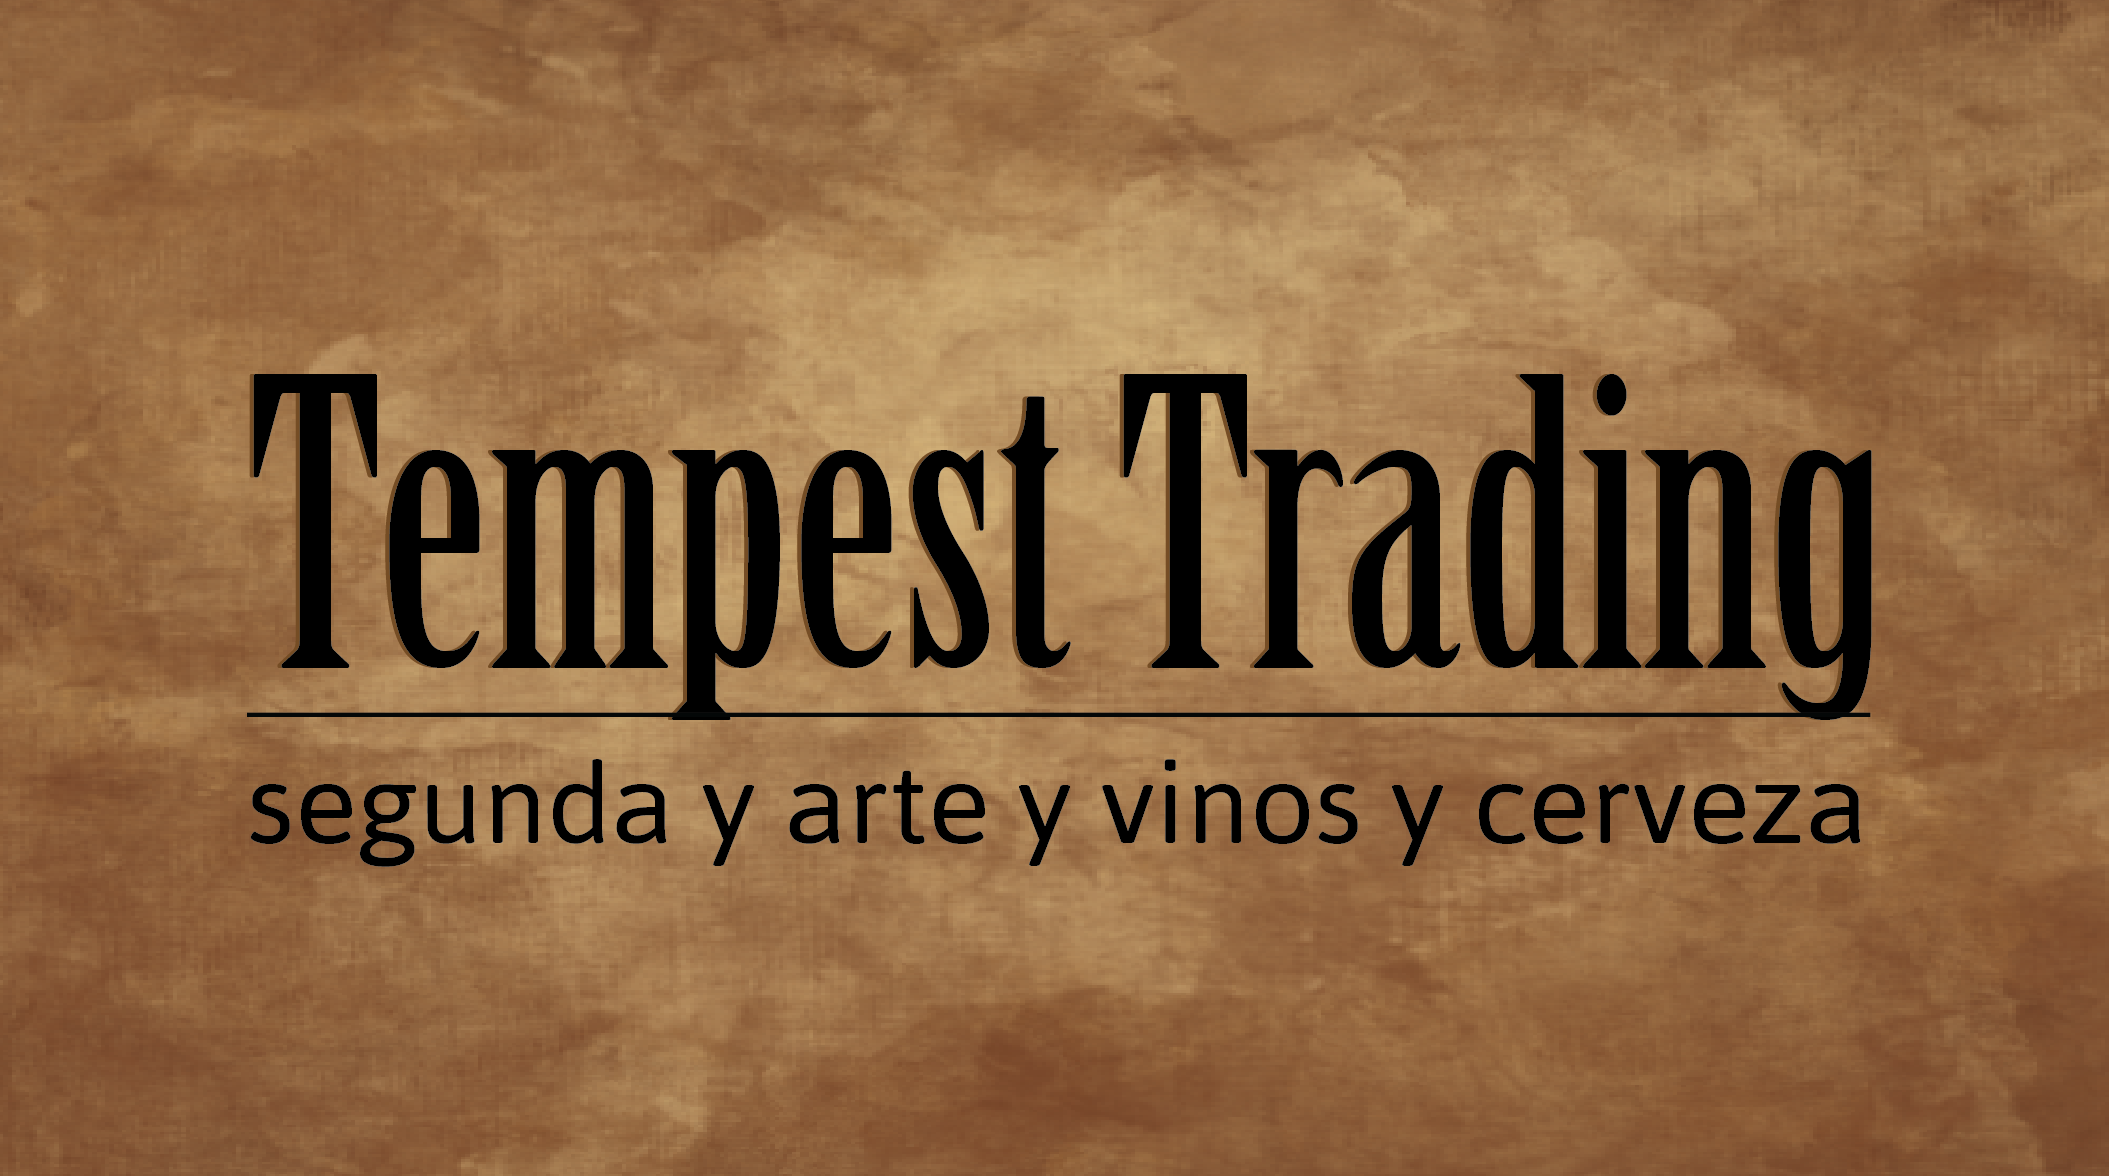 Tempest trading 2